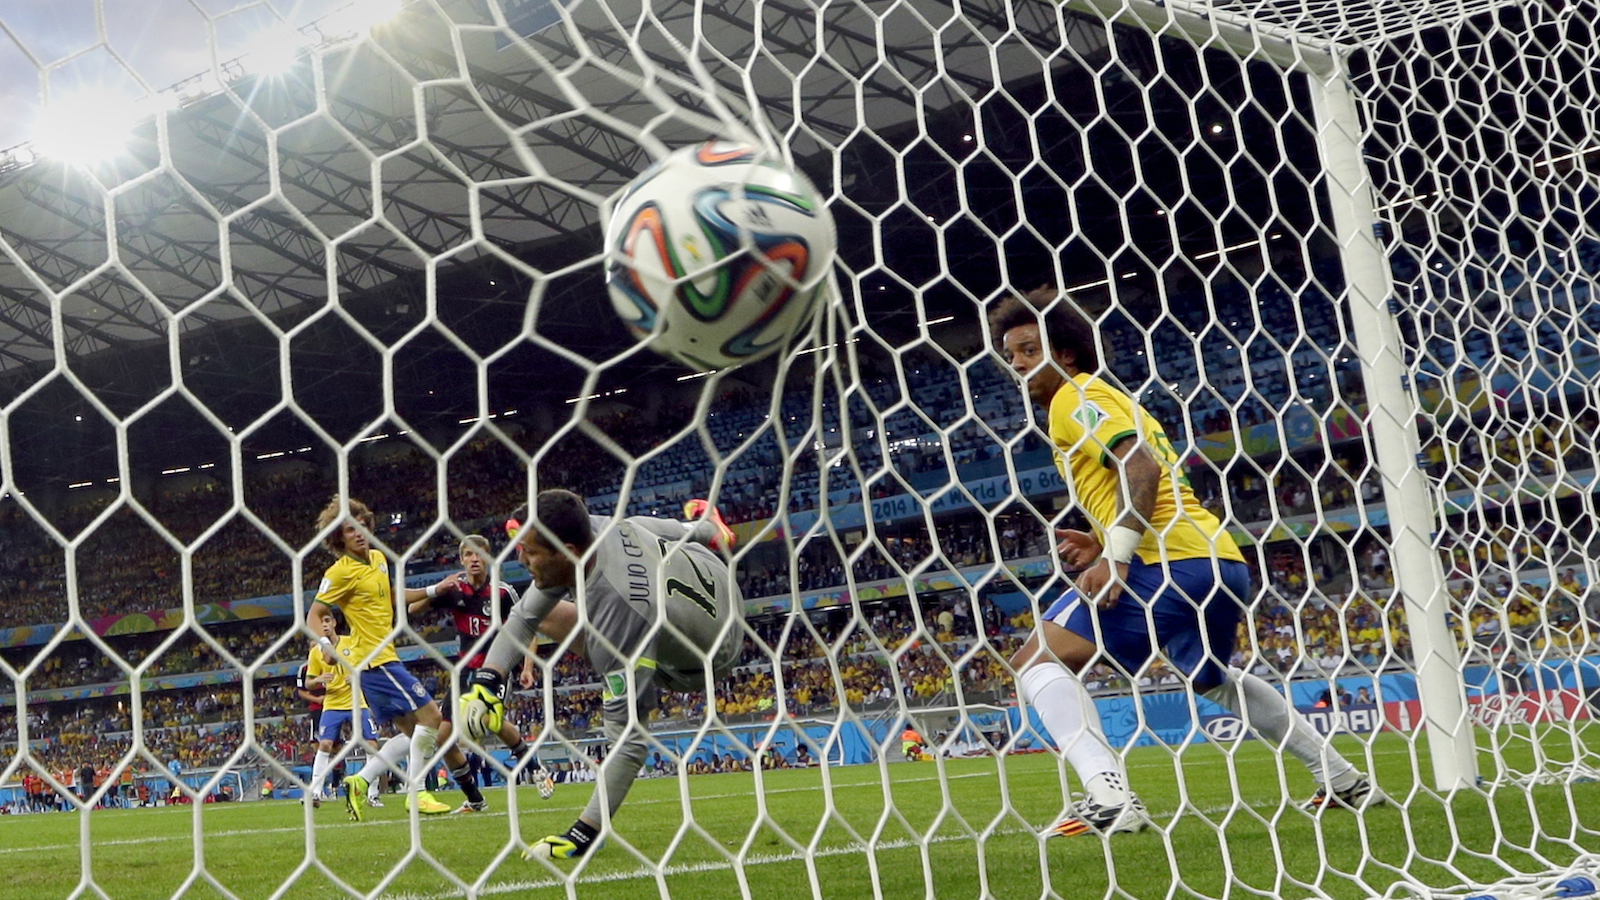 Brazil's goalkeeper Julio Cesar can not stop a shot by Germany's Thomas Mueller, background, to score his side's first goal during the World Cup semifinal soccer match between Brazil and Germany at the Mineirao Stadium in Belo Horizonte, Brazil, Tuesday, July 8, 2014. (AP Photo/Andre Penner)